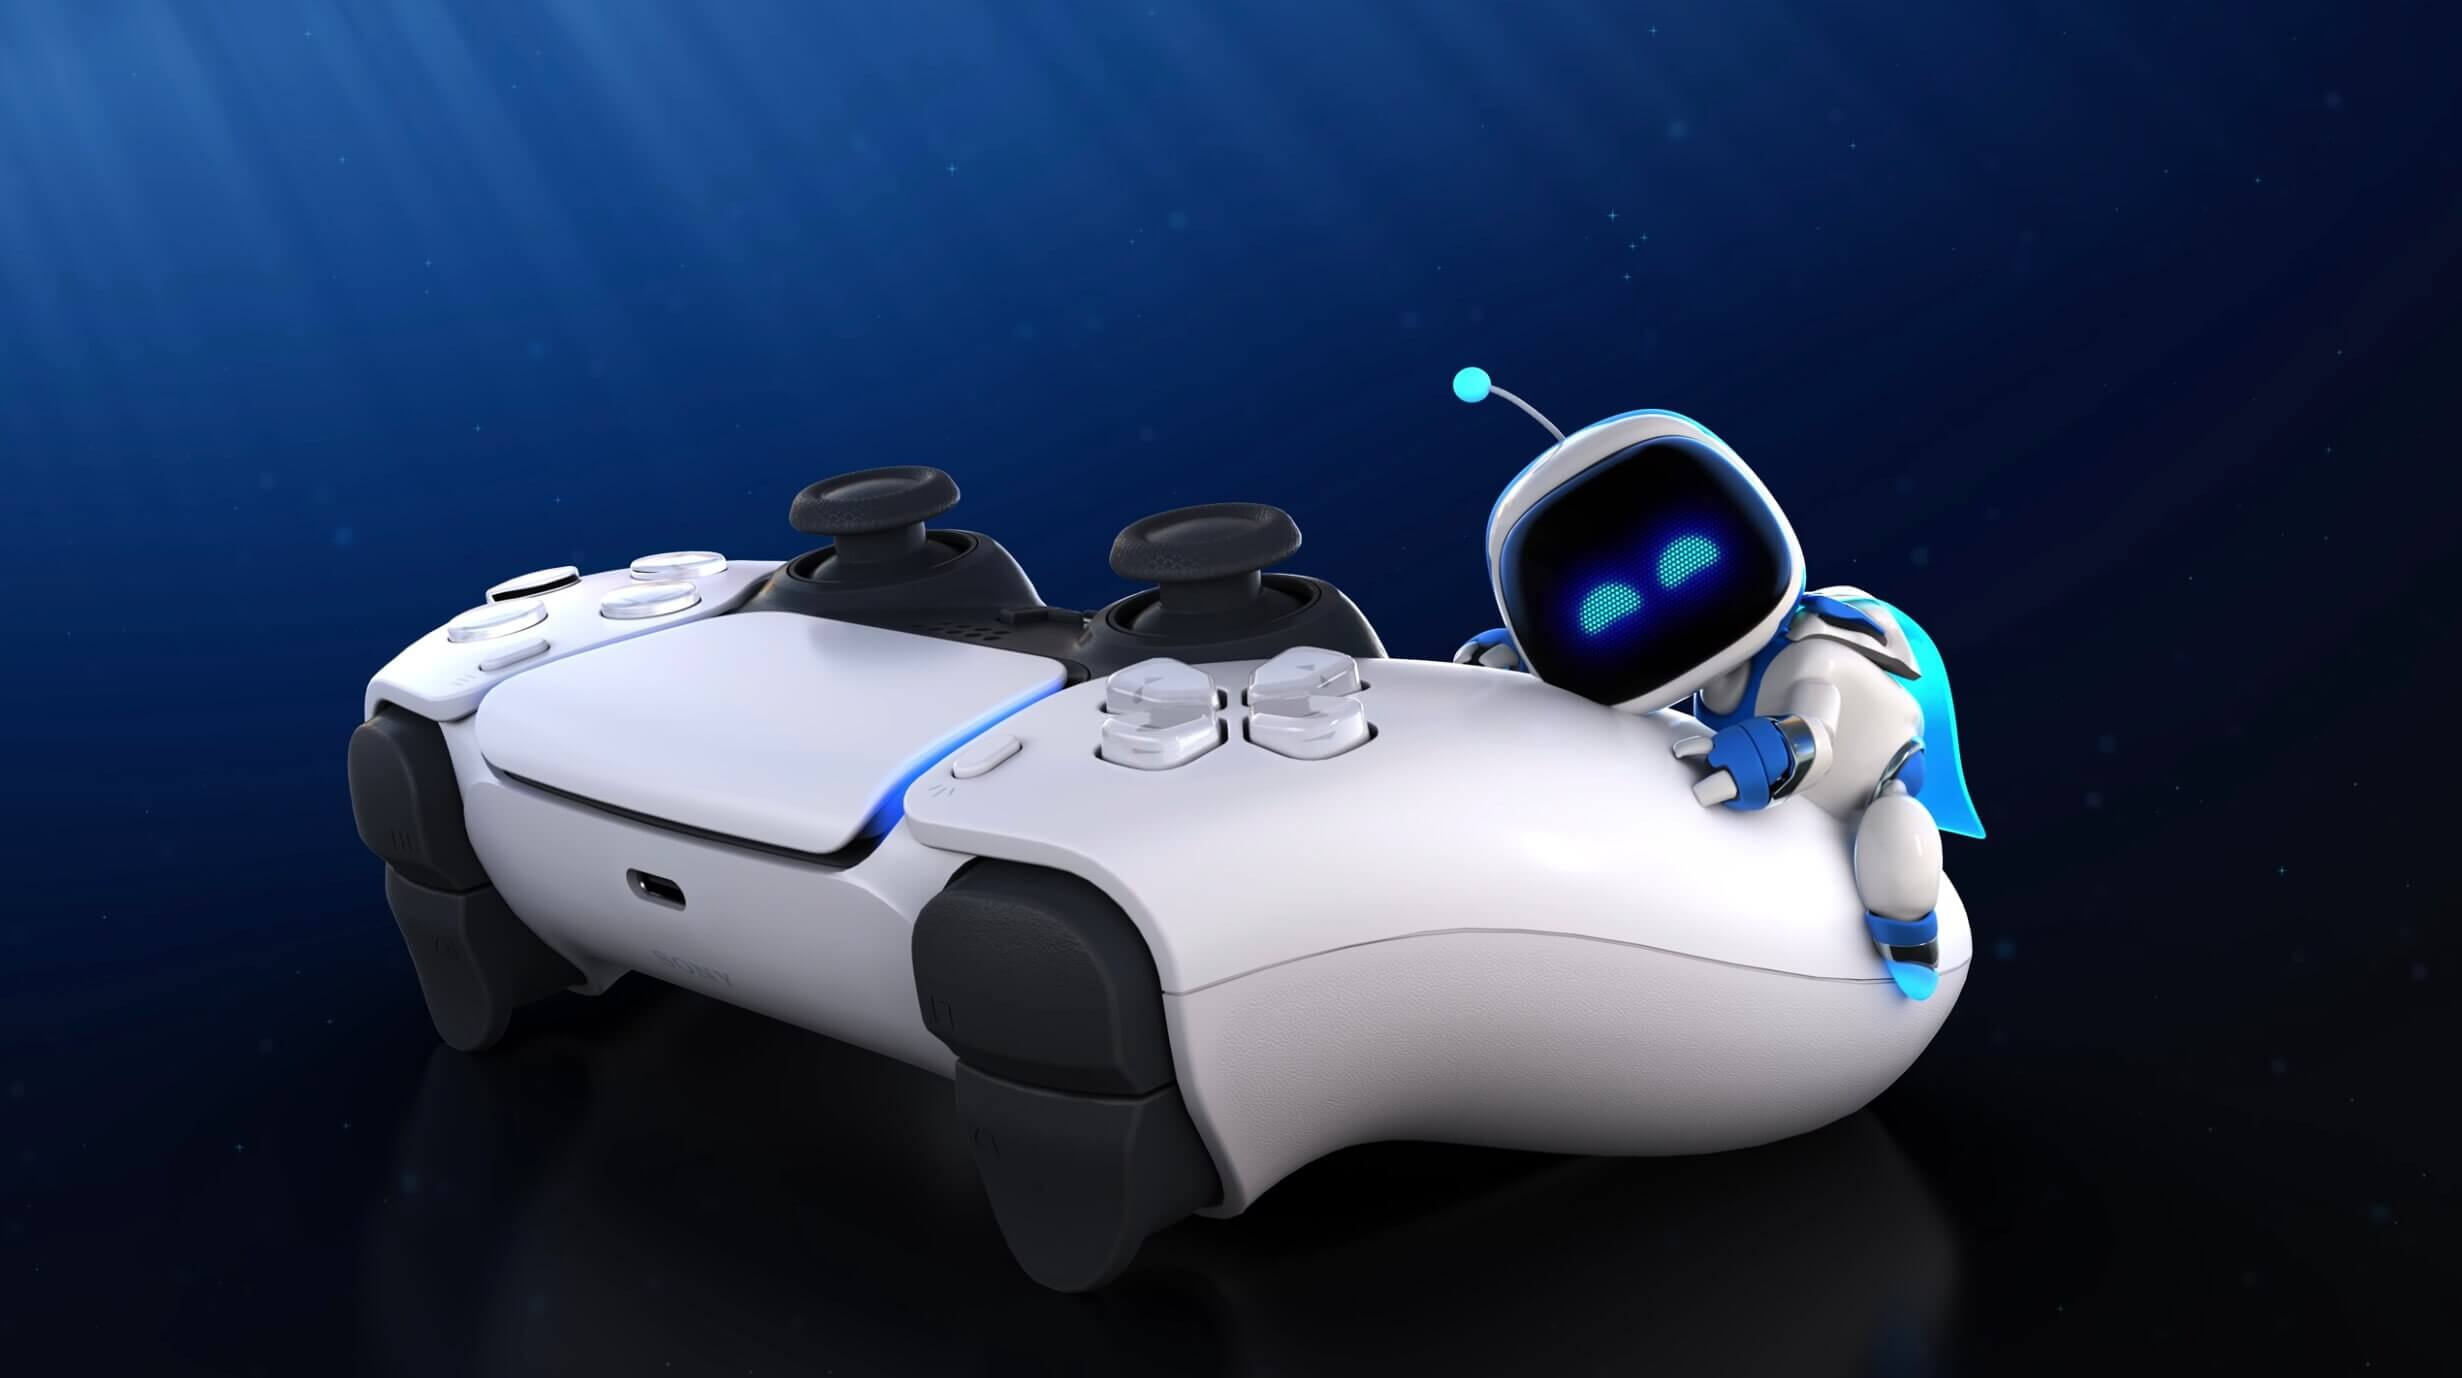 DualShock 4 controllers are only partially compatible with the PlayStation 5